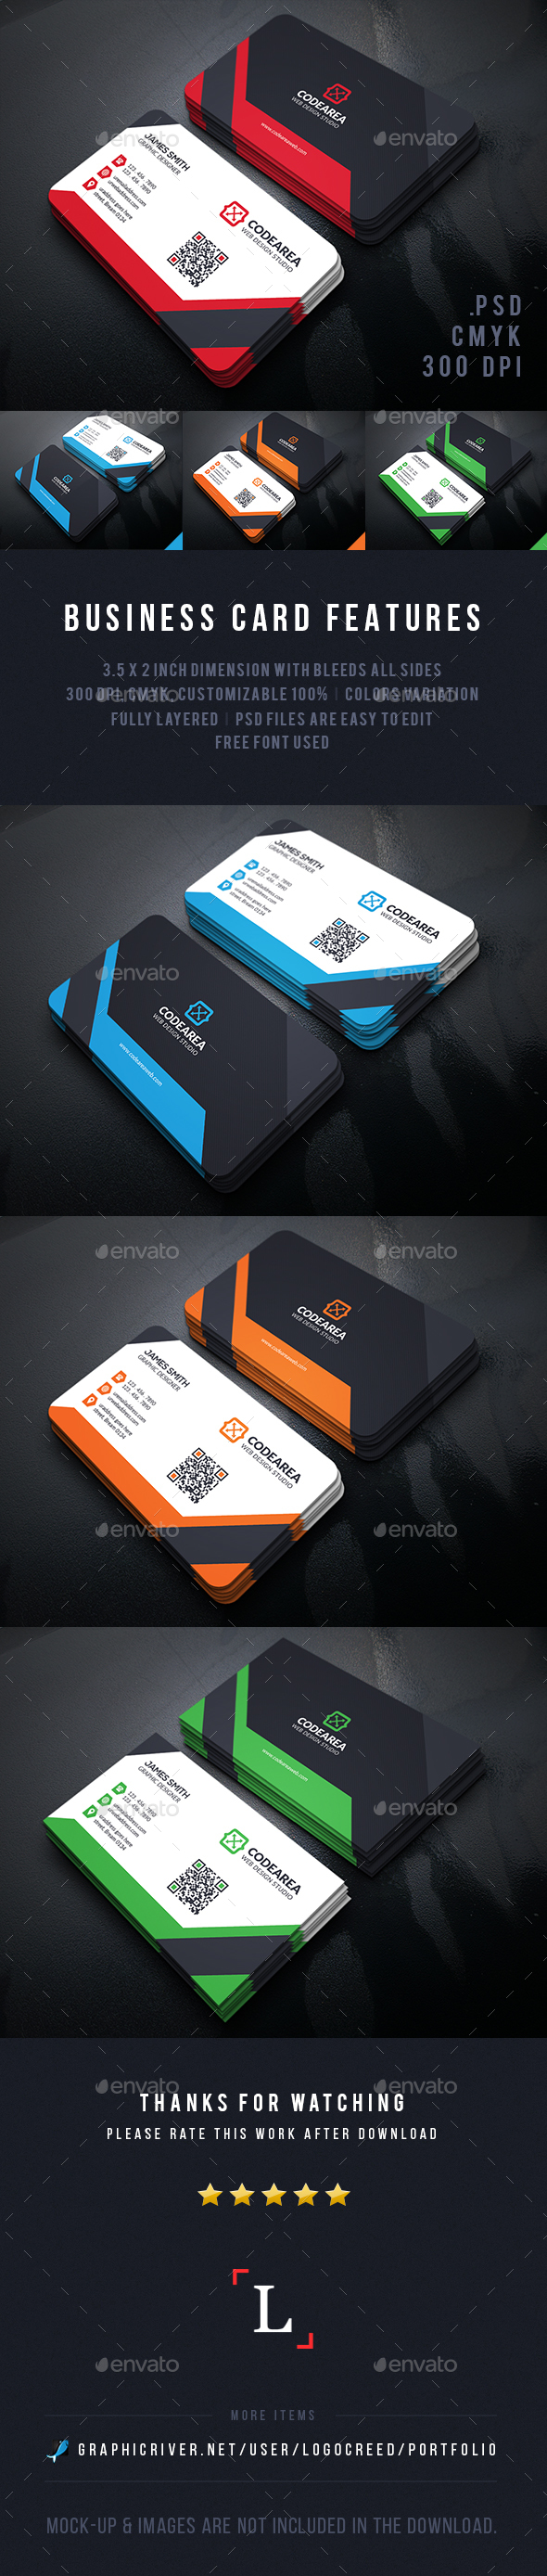 Professional Business Cards - Business Cards Print Templates